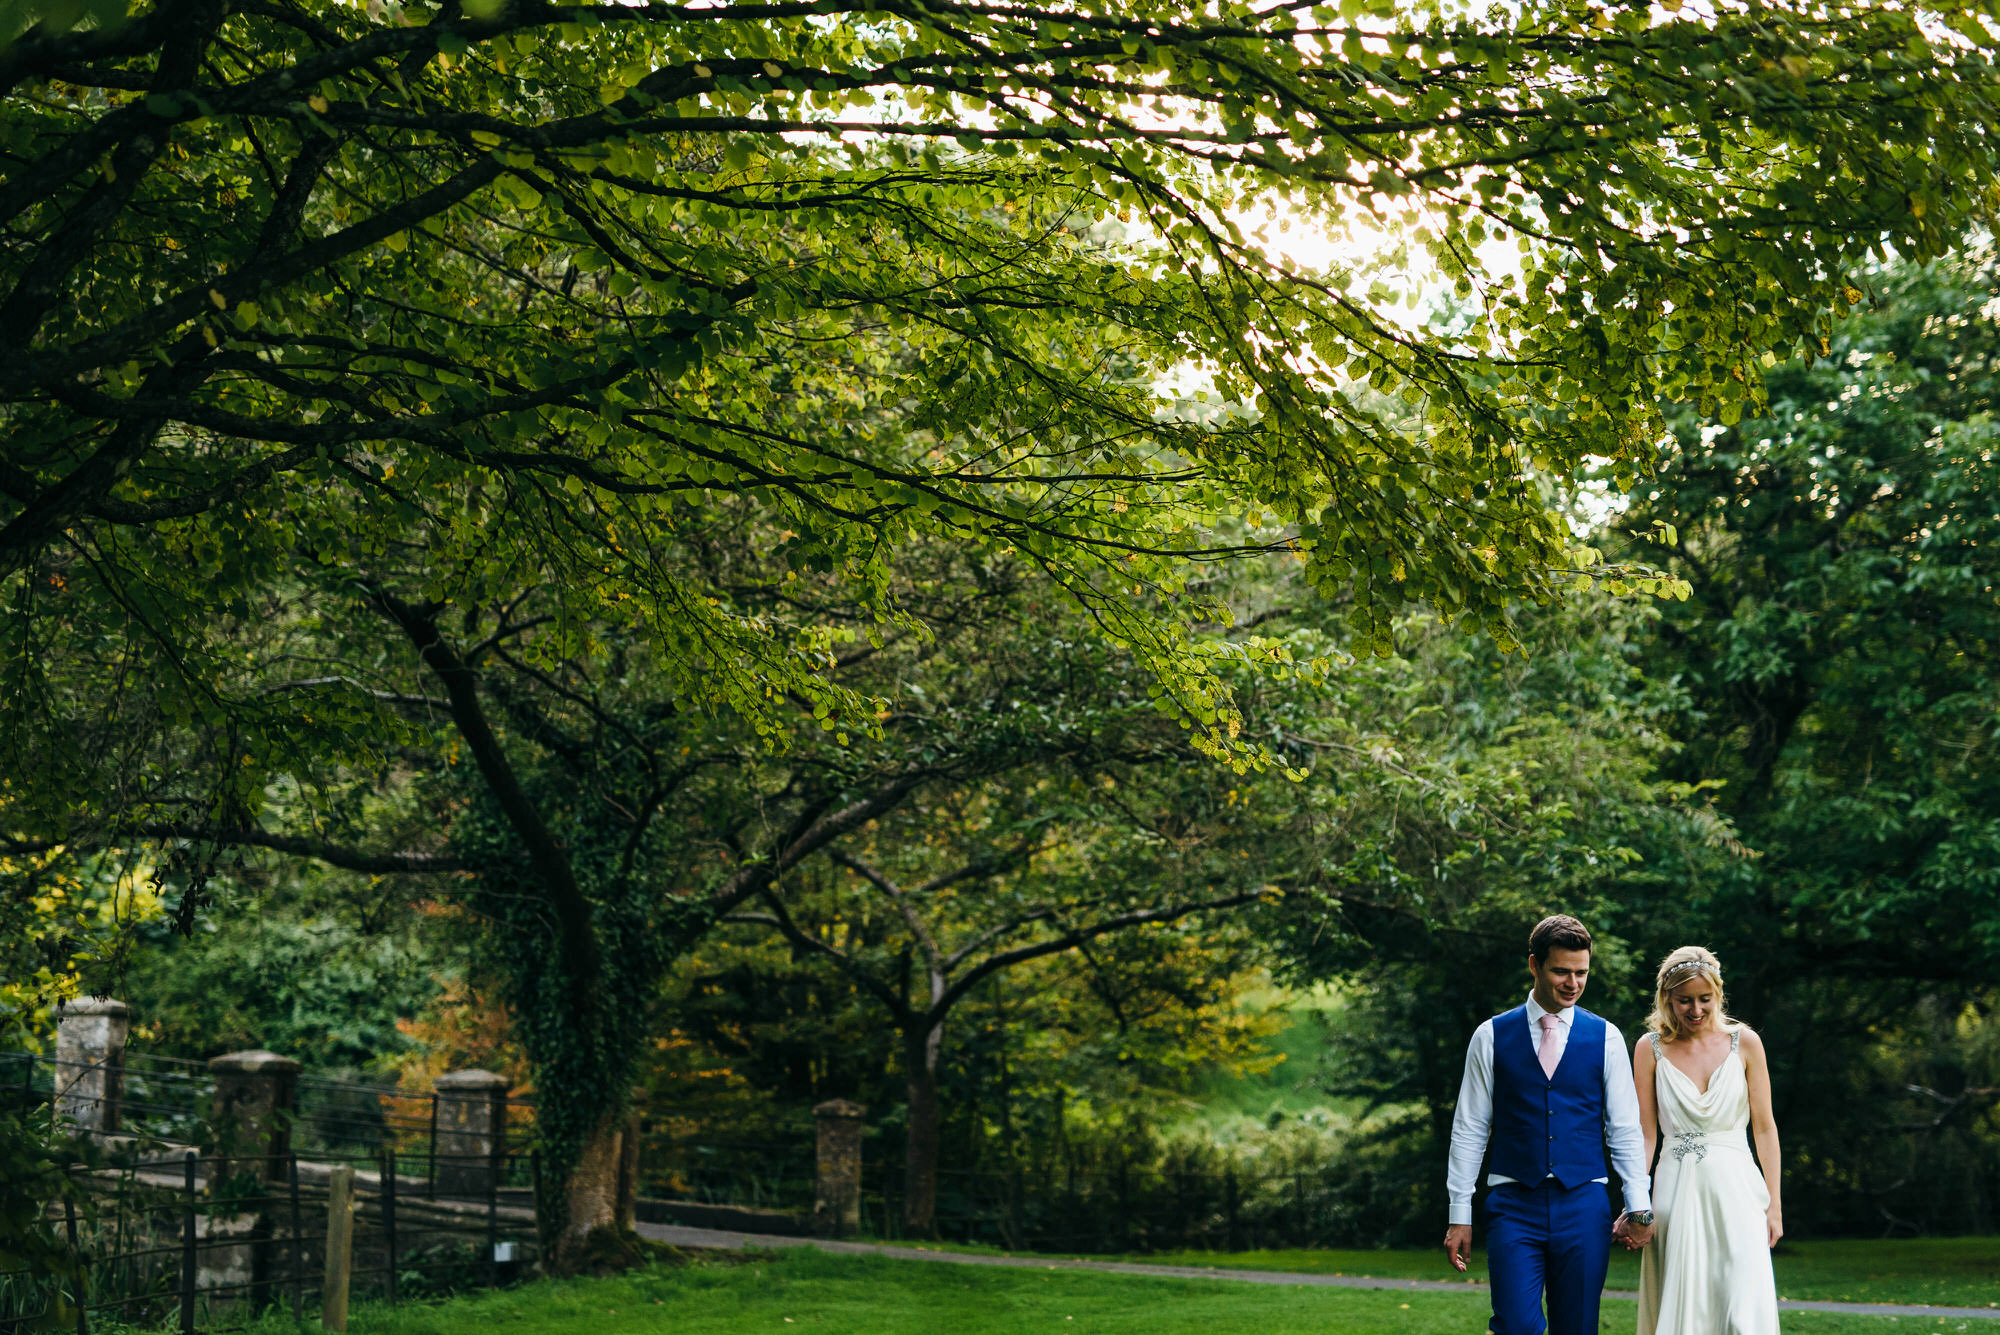 The manor house wedding photographer